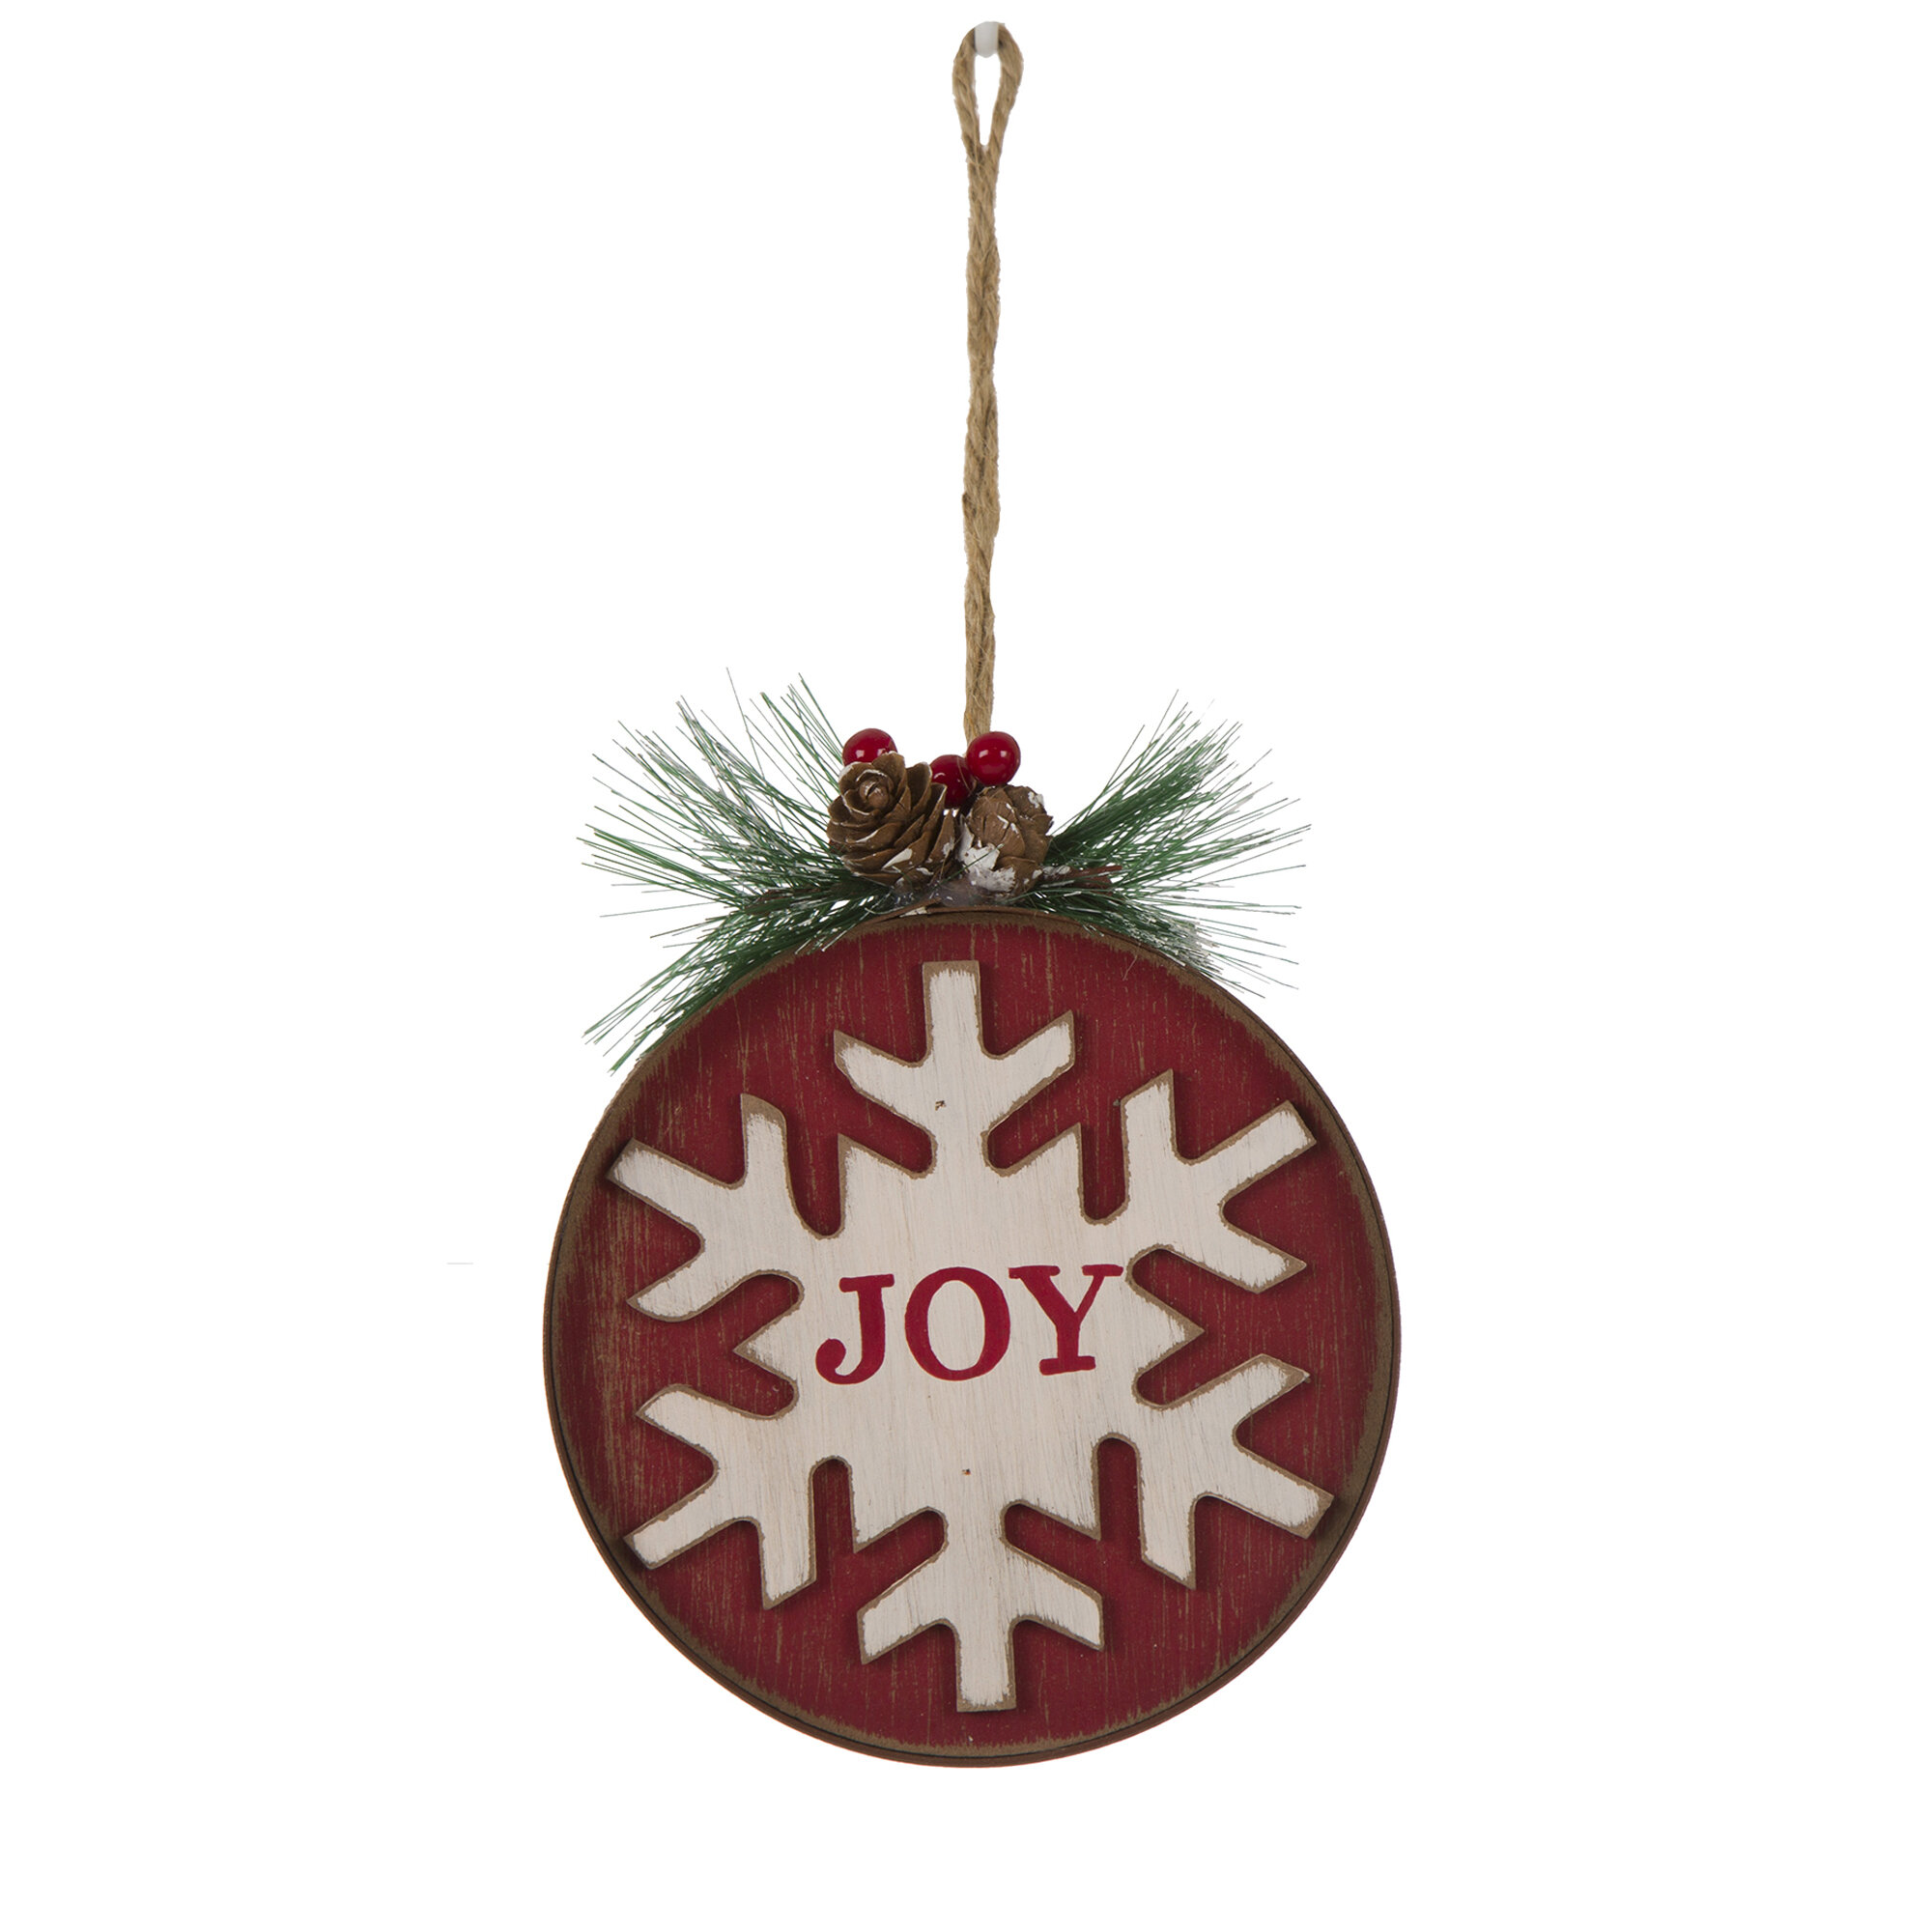 Joy\' Wooden and Iron Christmas Ornament & Reviews | Joss & Main